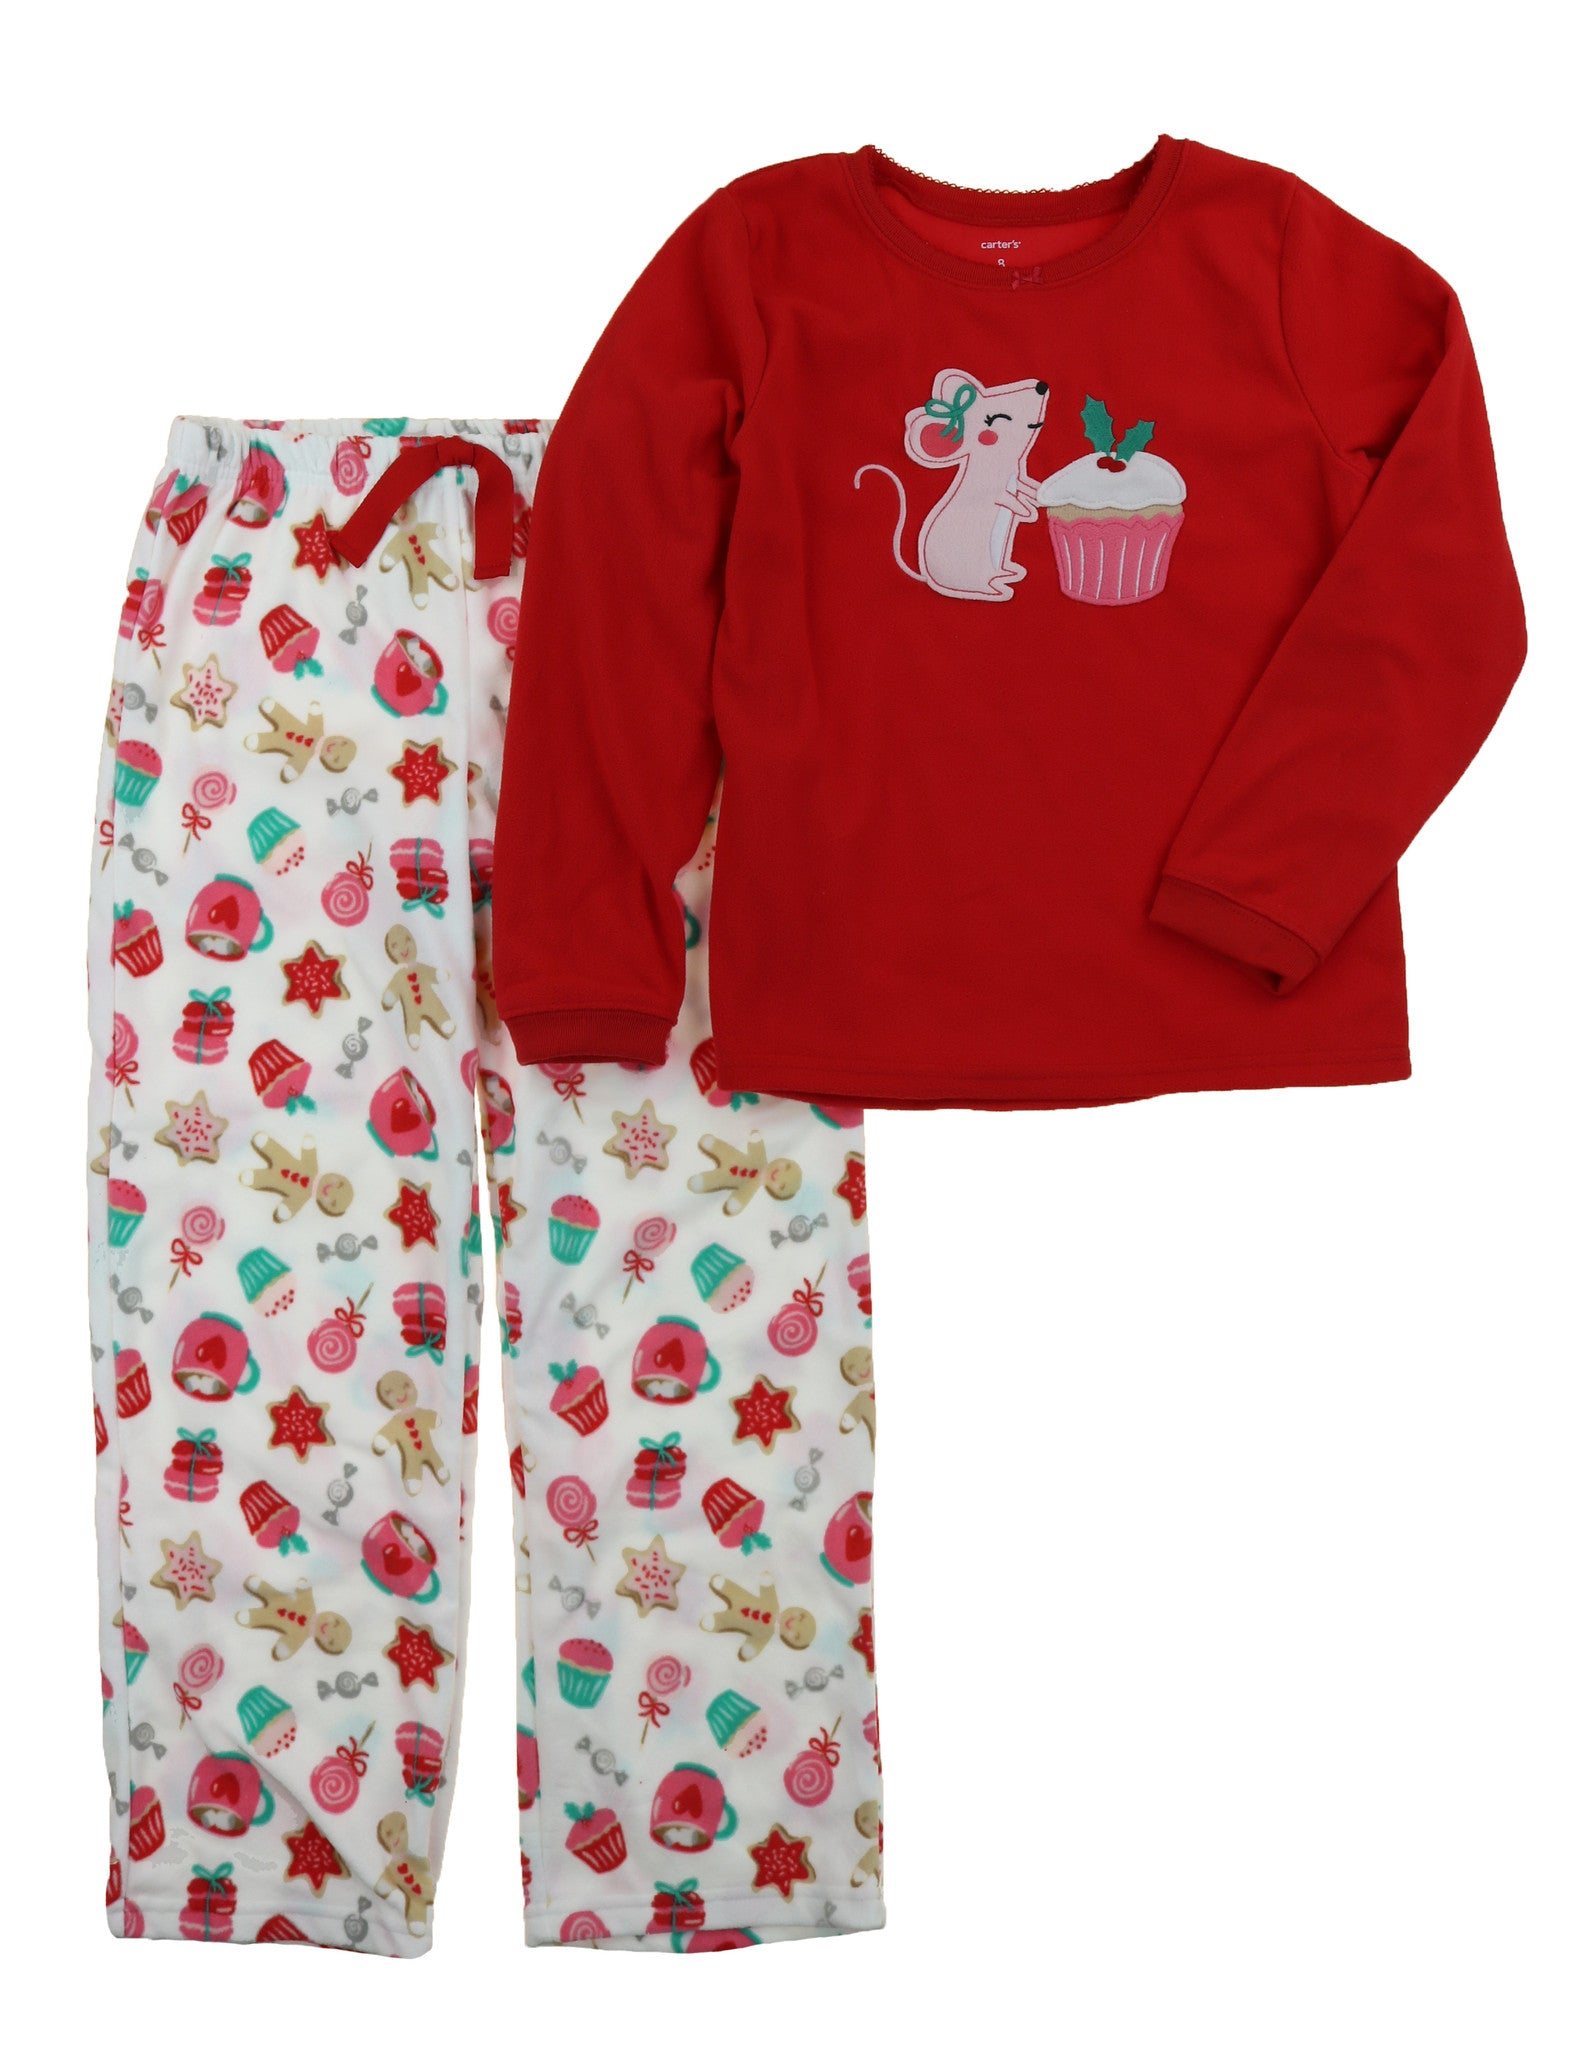 04580a903 Carters Girl s 2 Piece Cozy Flannel Pajamas Shirt and Pant Sleepwear ...